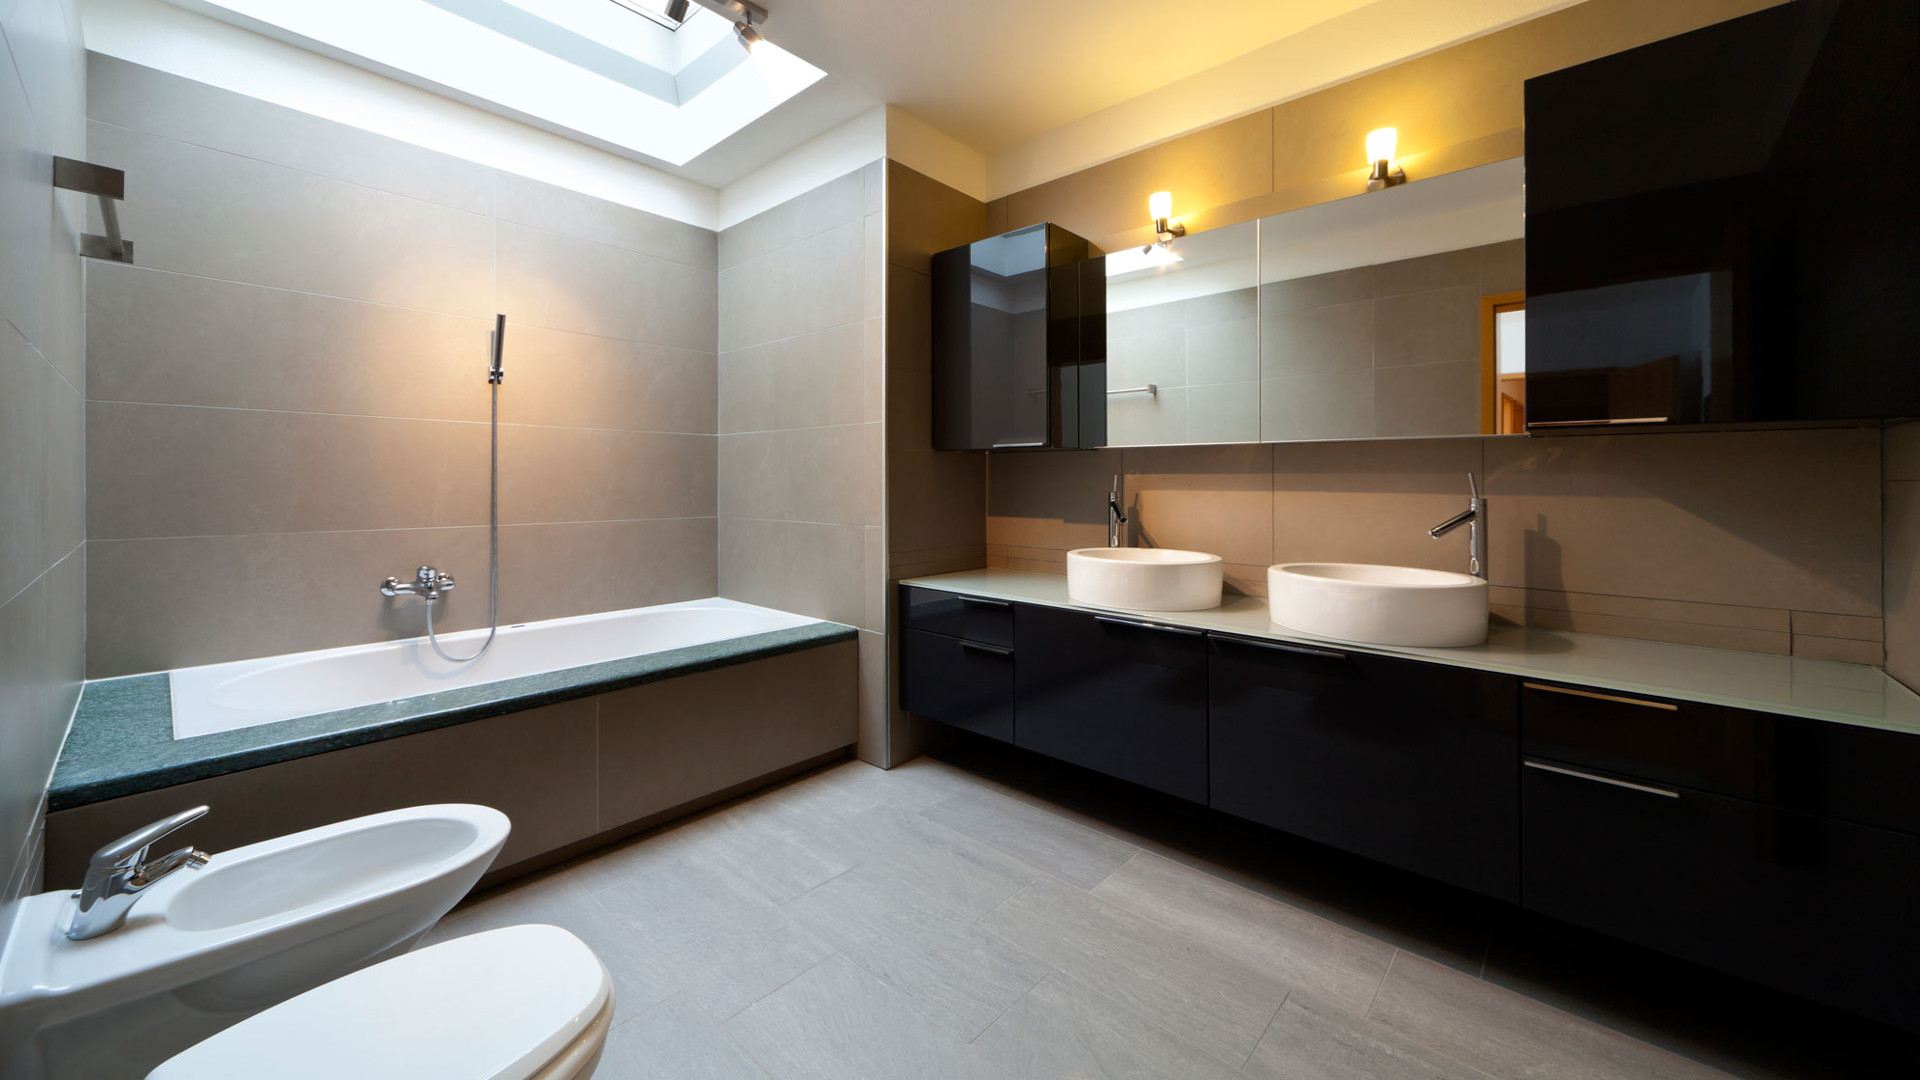 Flushing Bathroom Remodeling